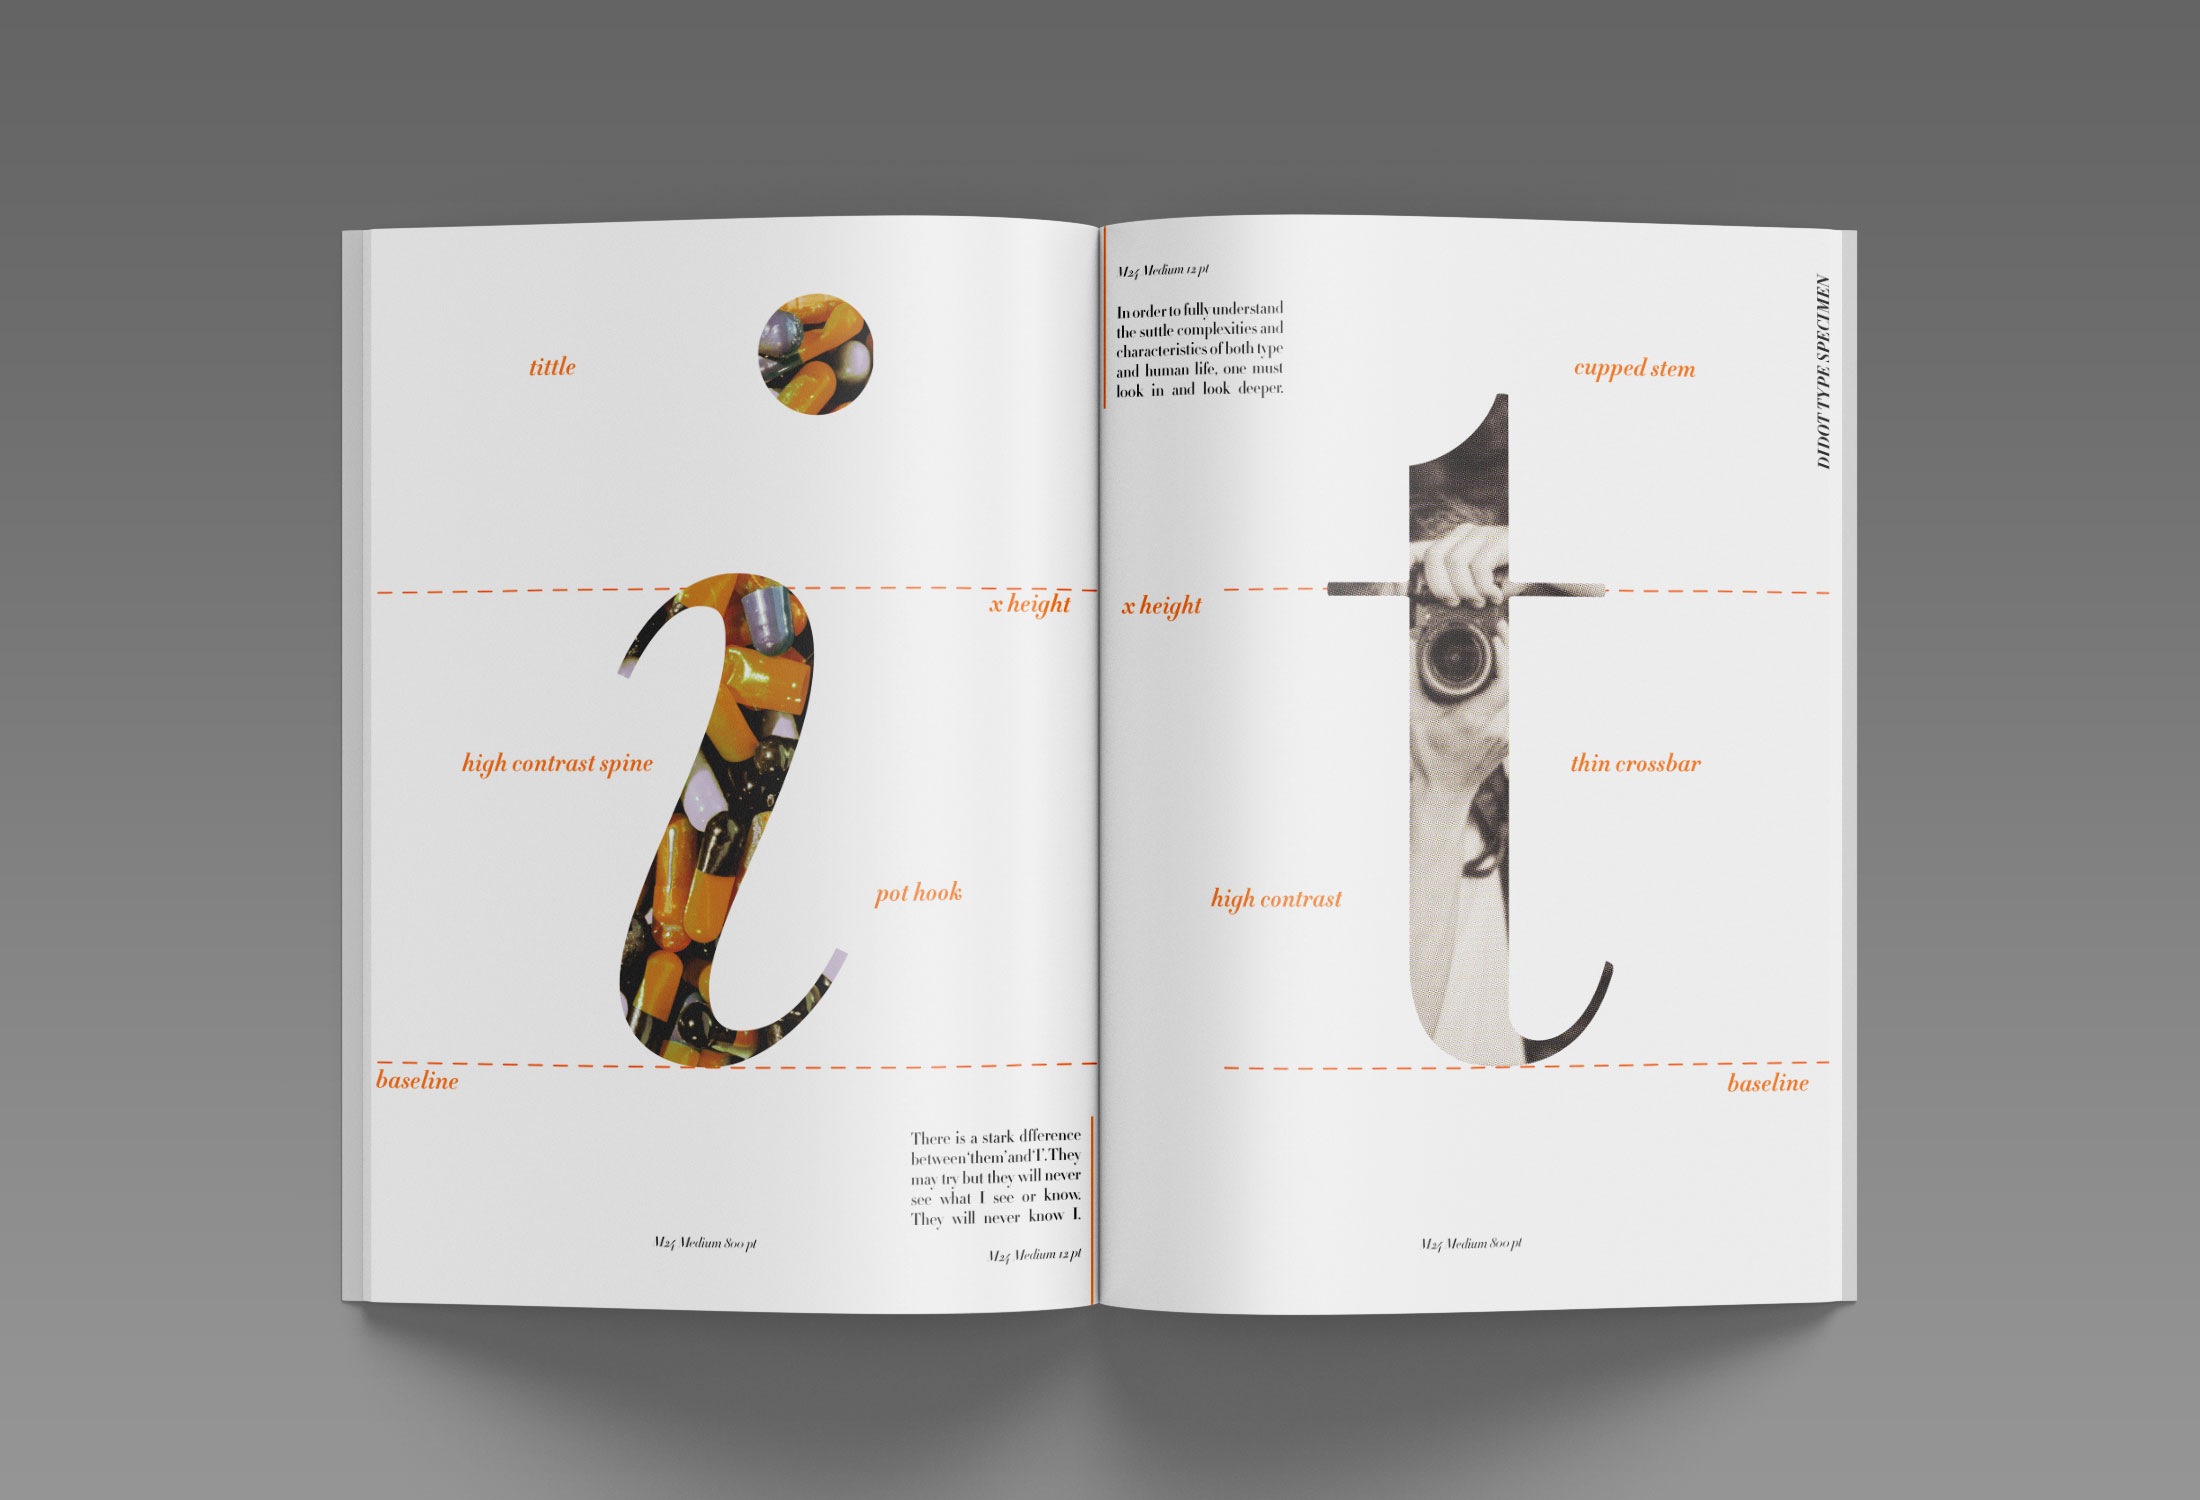 examination of specific letters from typeface